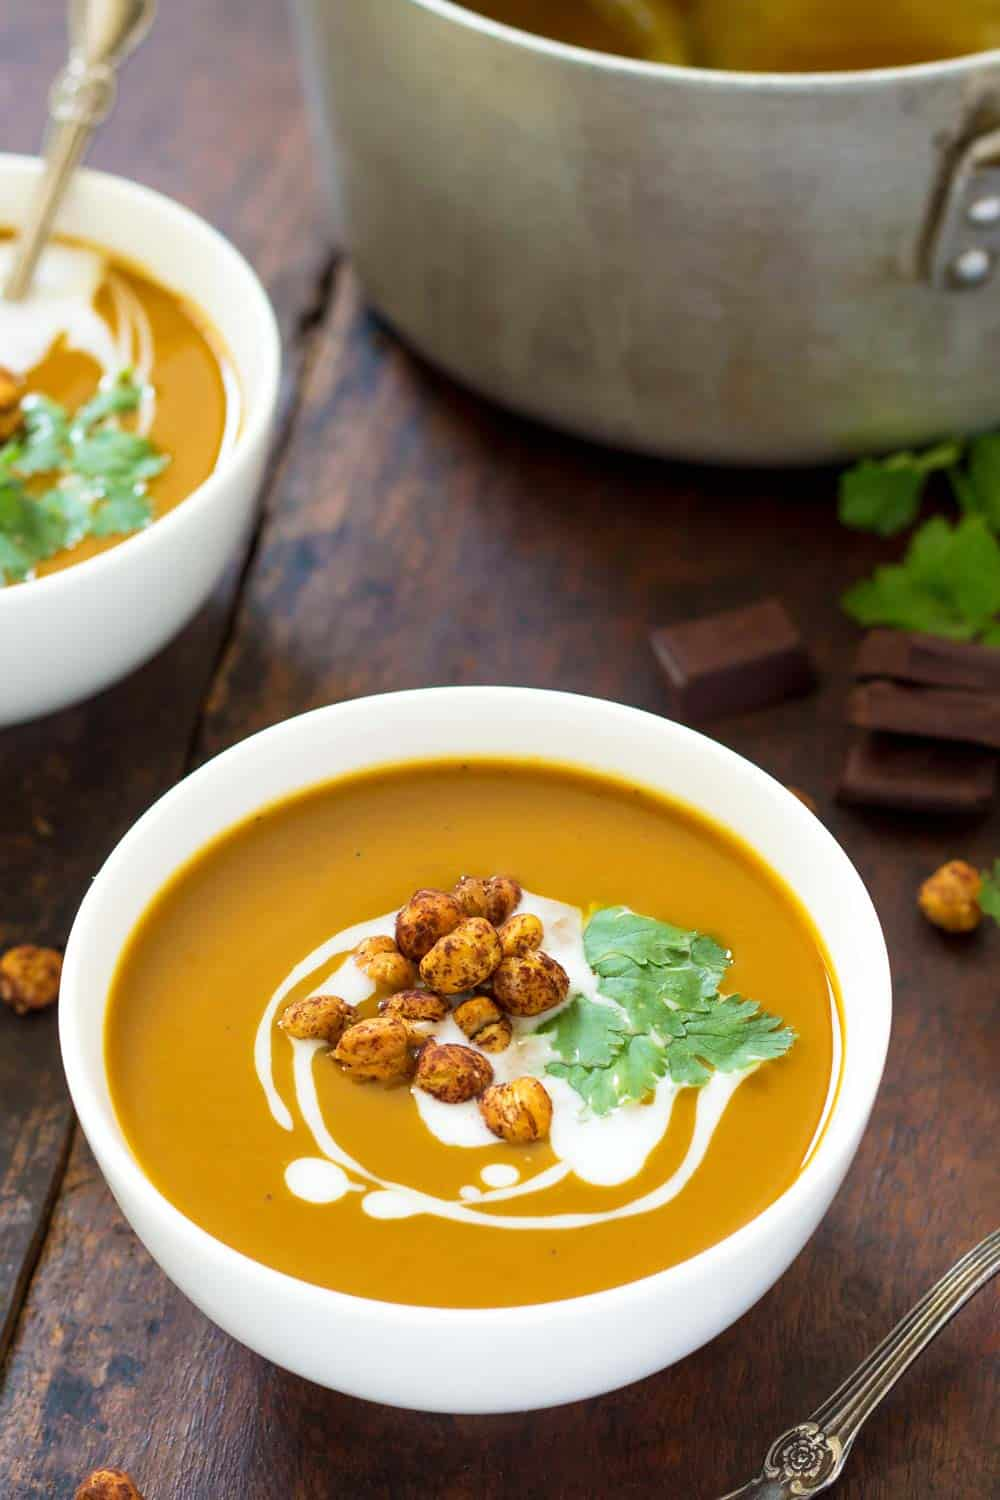 This velvety smooth chocolate roasted Butternut Squash Soup is topped with crunchy chili + cocoa roasted chickpeas. Thanks to the unique combination of dark chocolate, chili and spices this creamy soup has an aromatic mole-like richness, which makes it both perfect as an appetizer or main course.